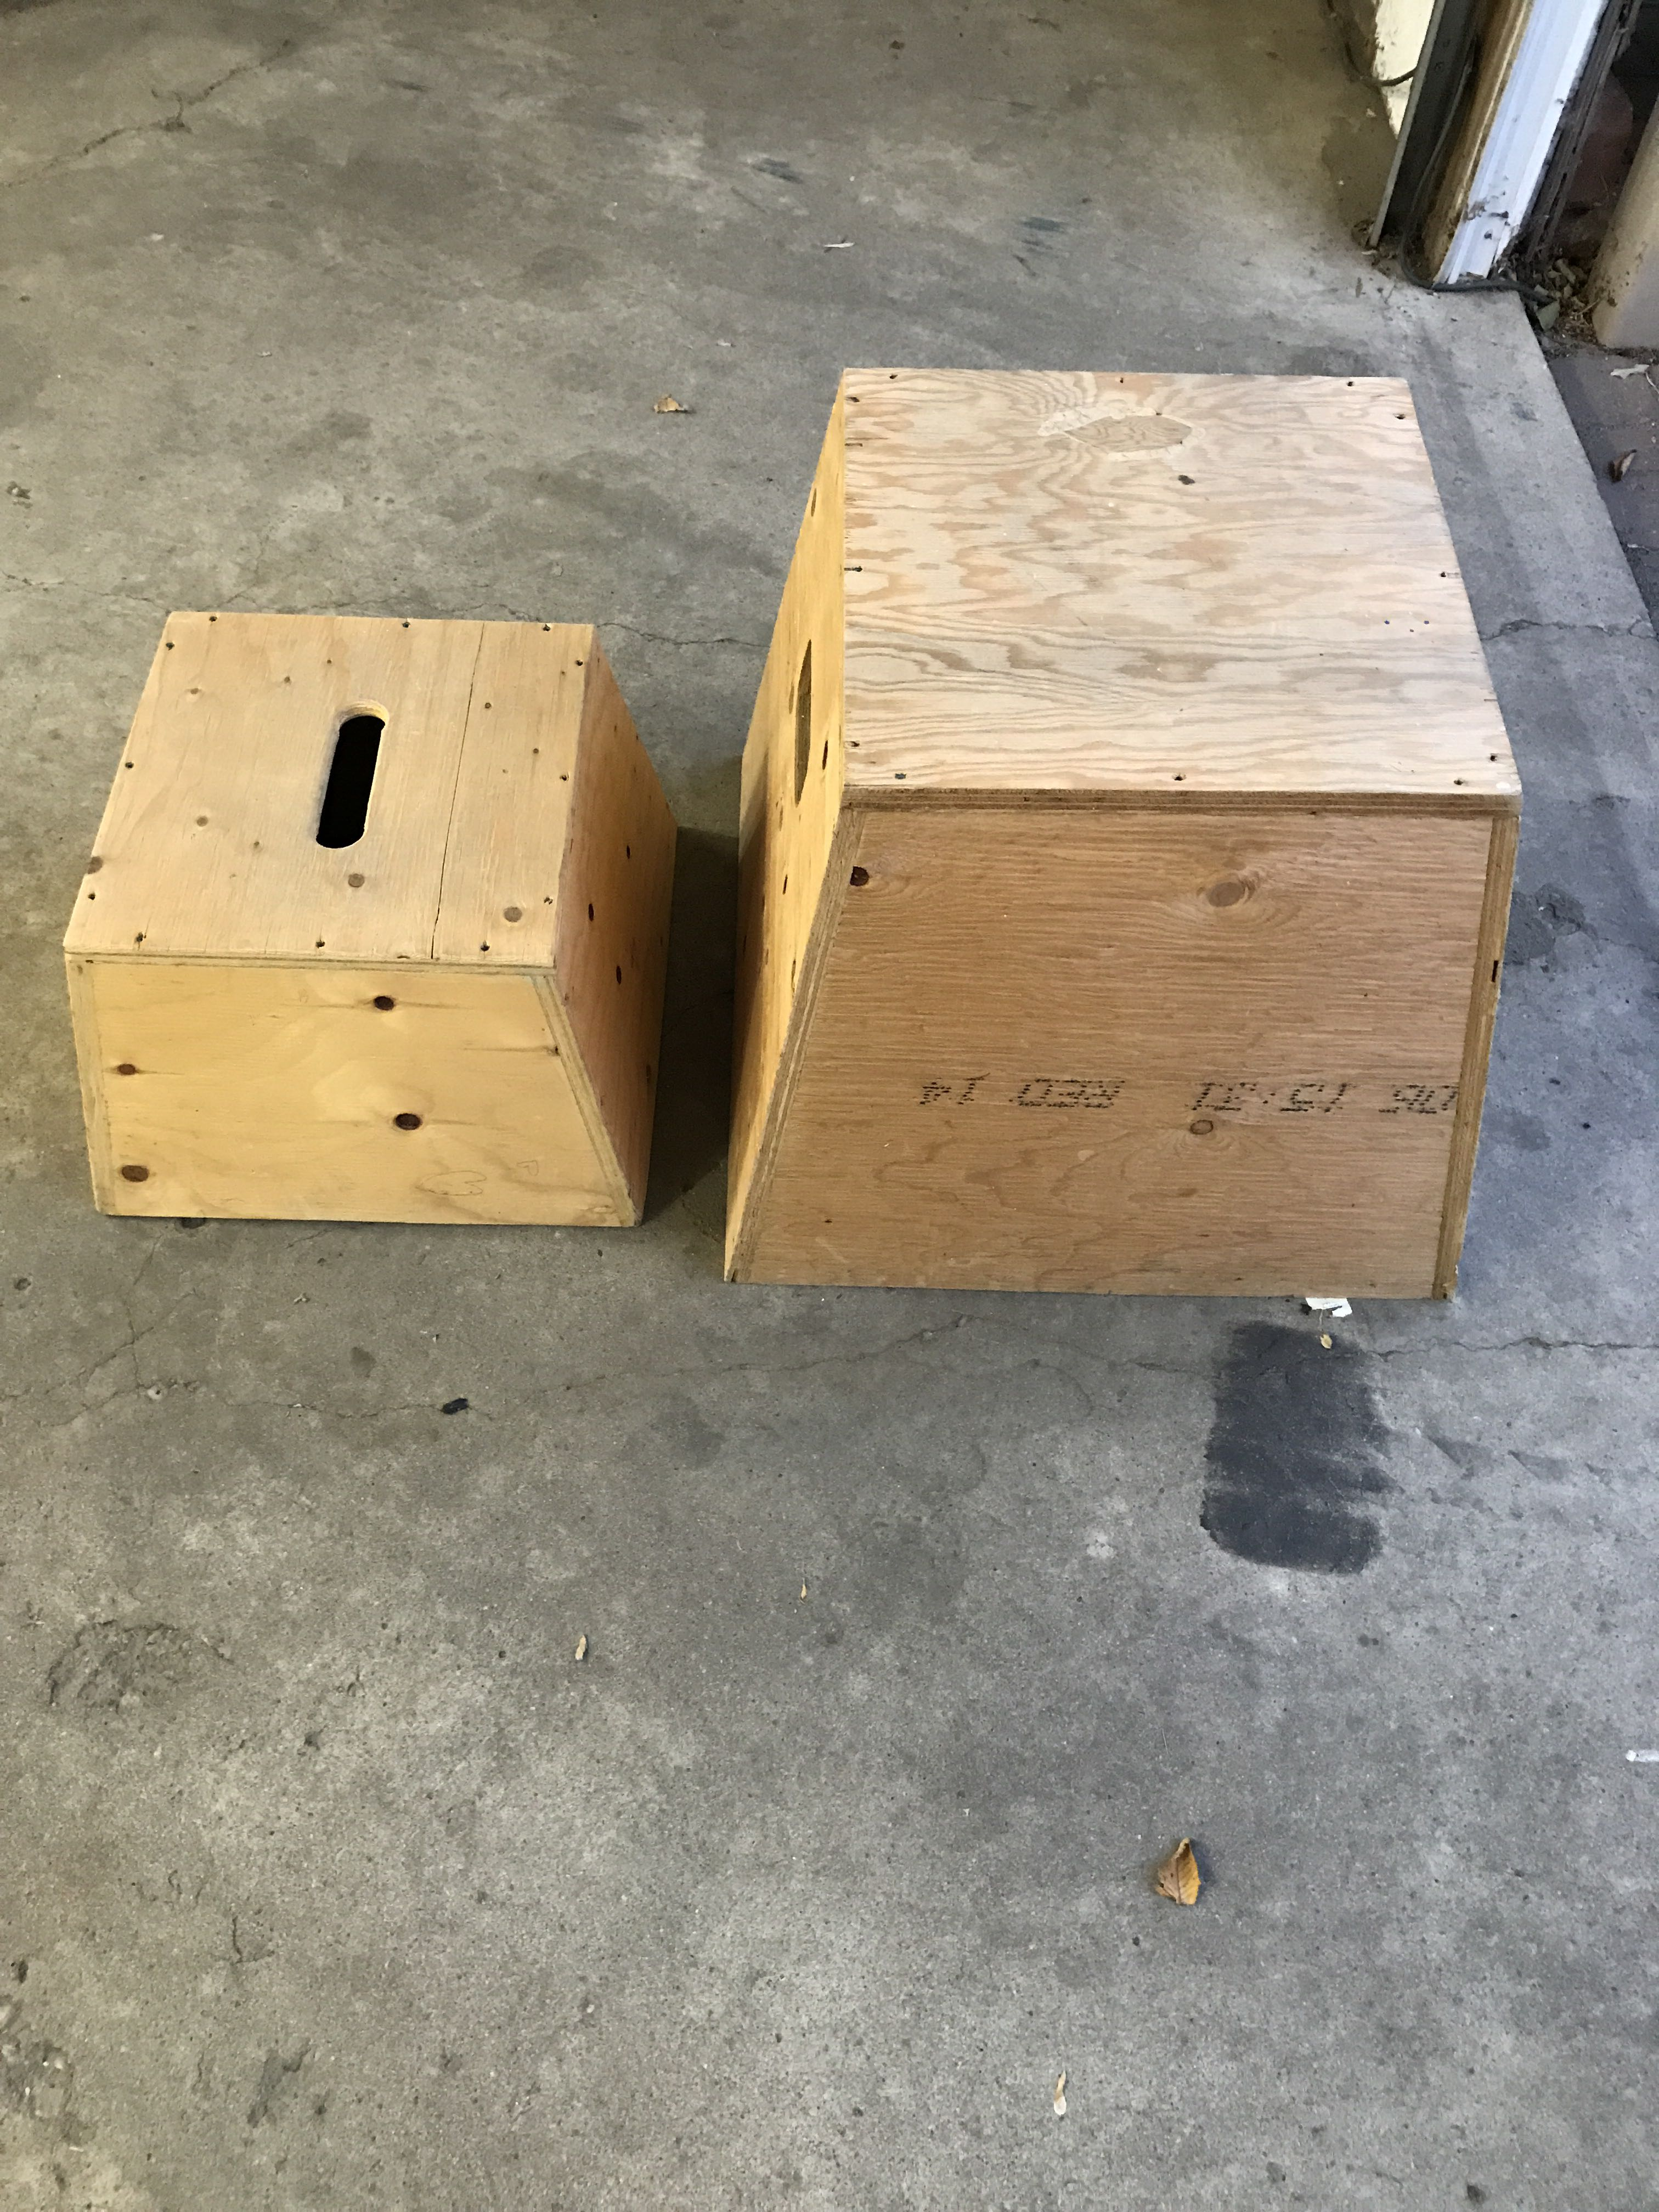 Step boxes